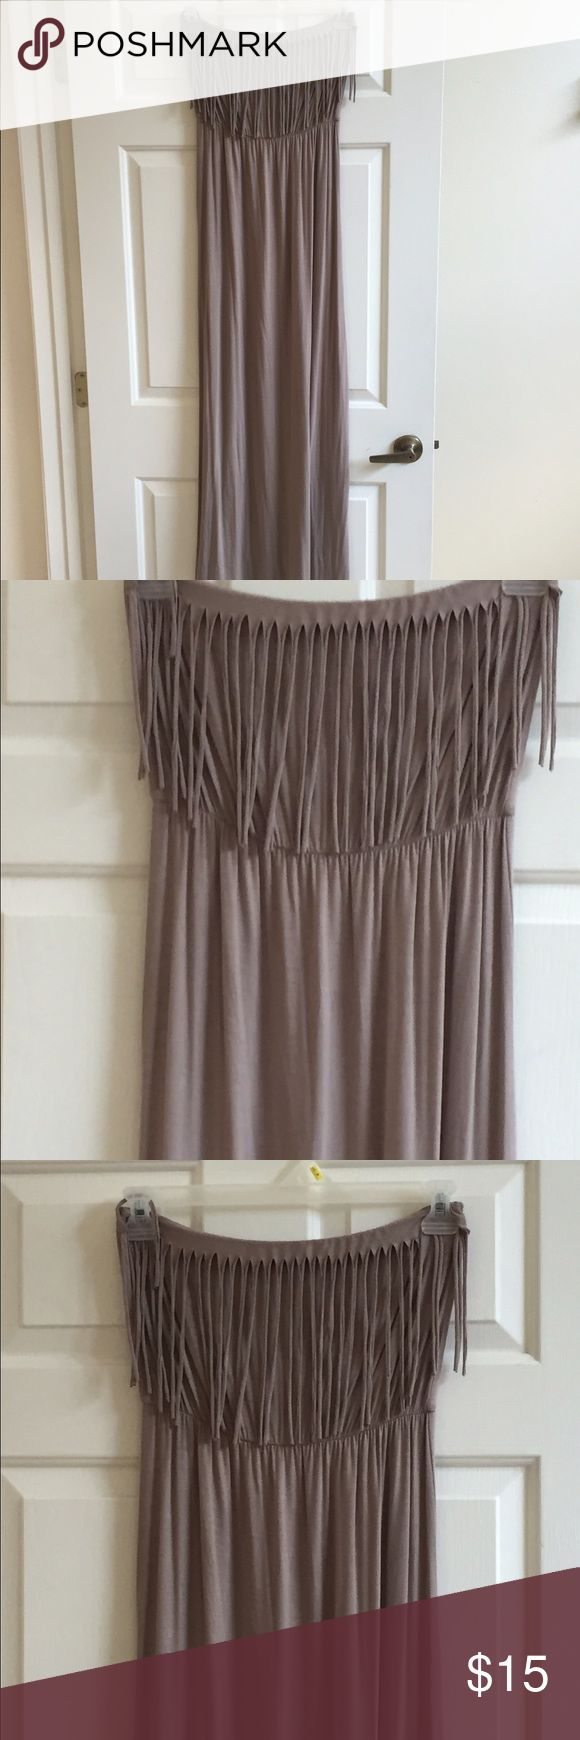 Strapless light brown maxi Dress Beautiful dress light brown never worn brand new Dresses Maxi